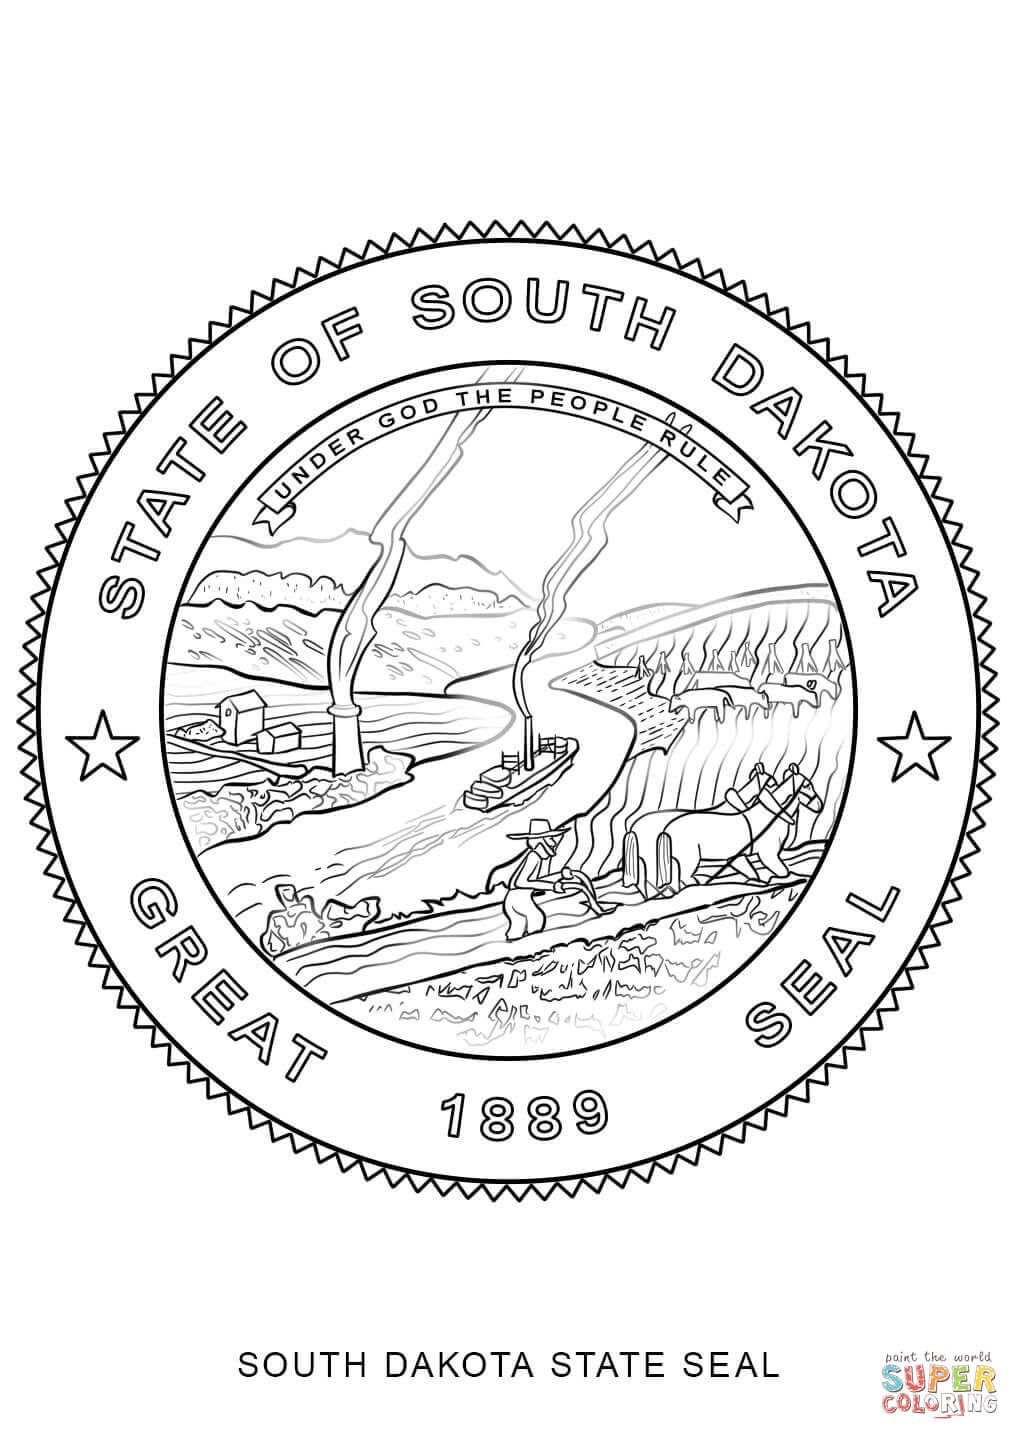 Click The South Dakota State Seal Coloring Pages To View Printable